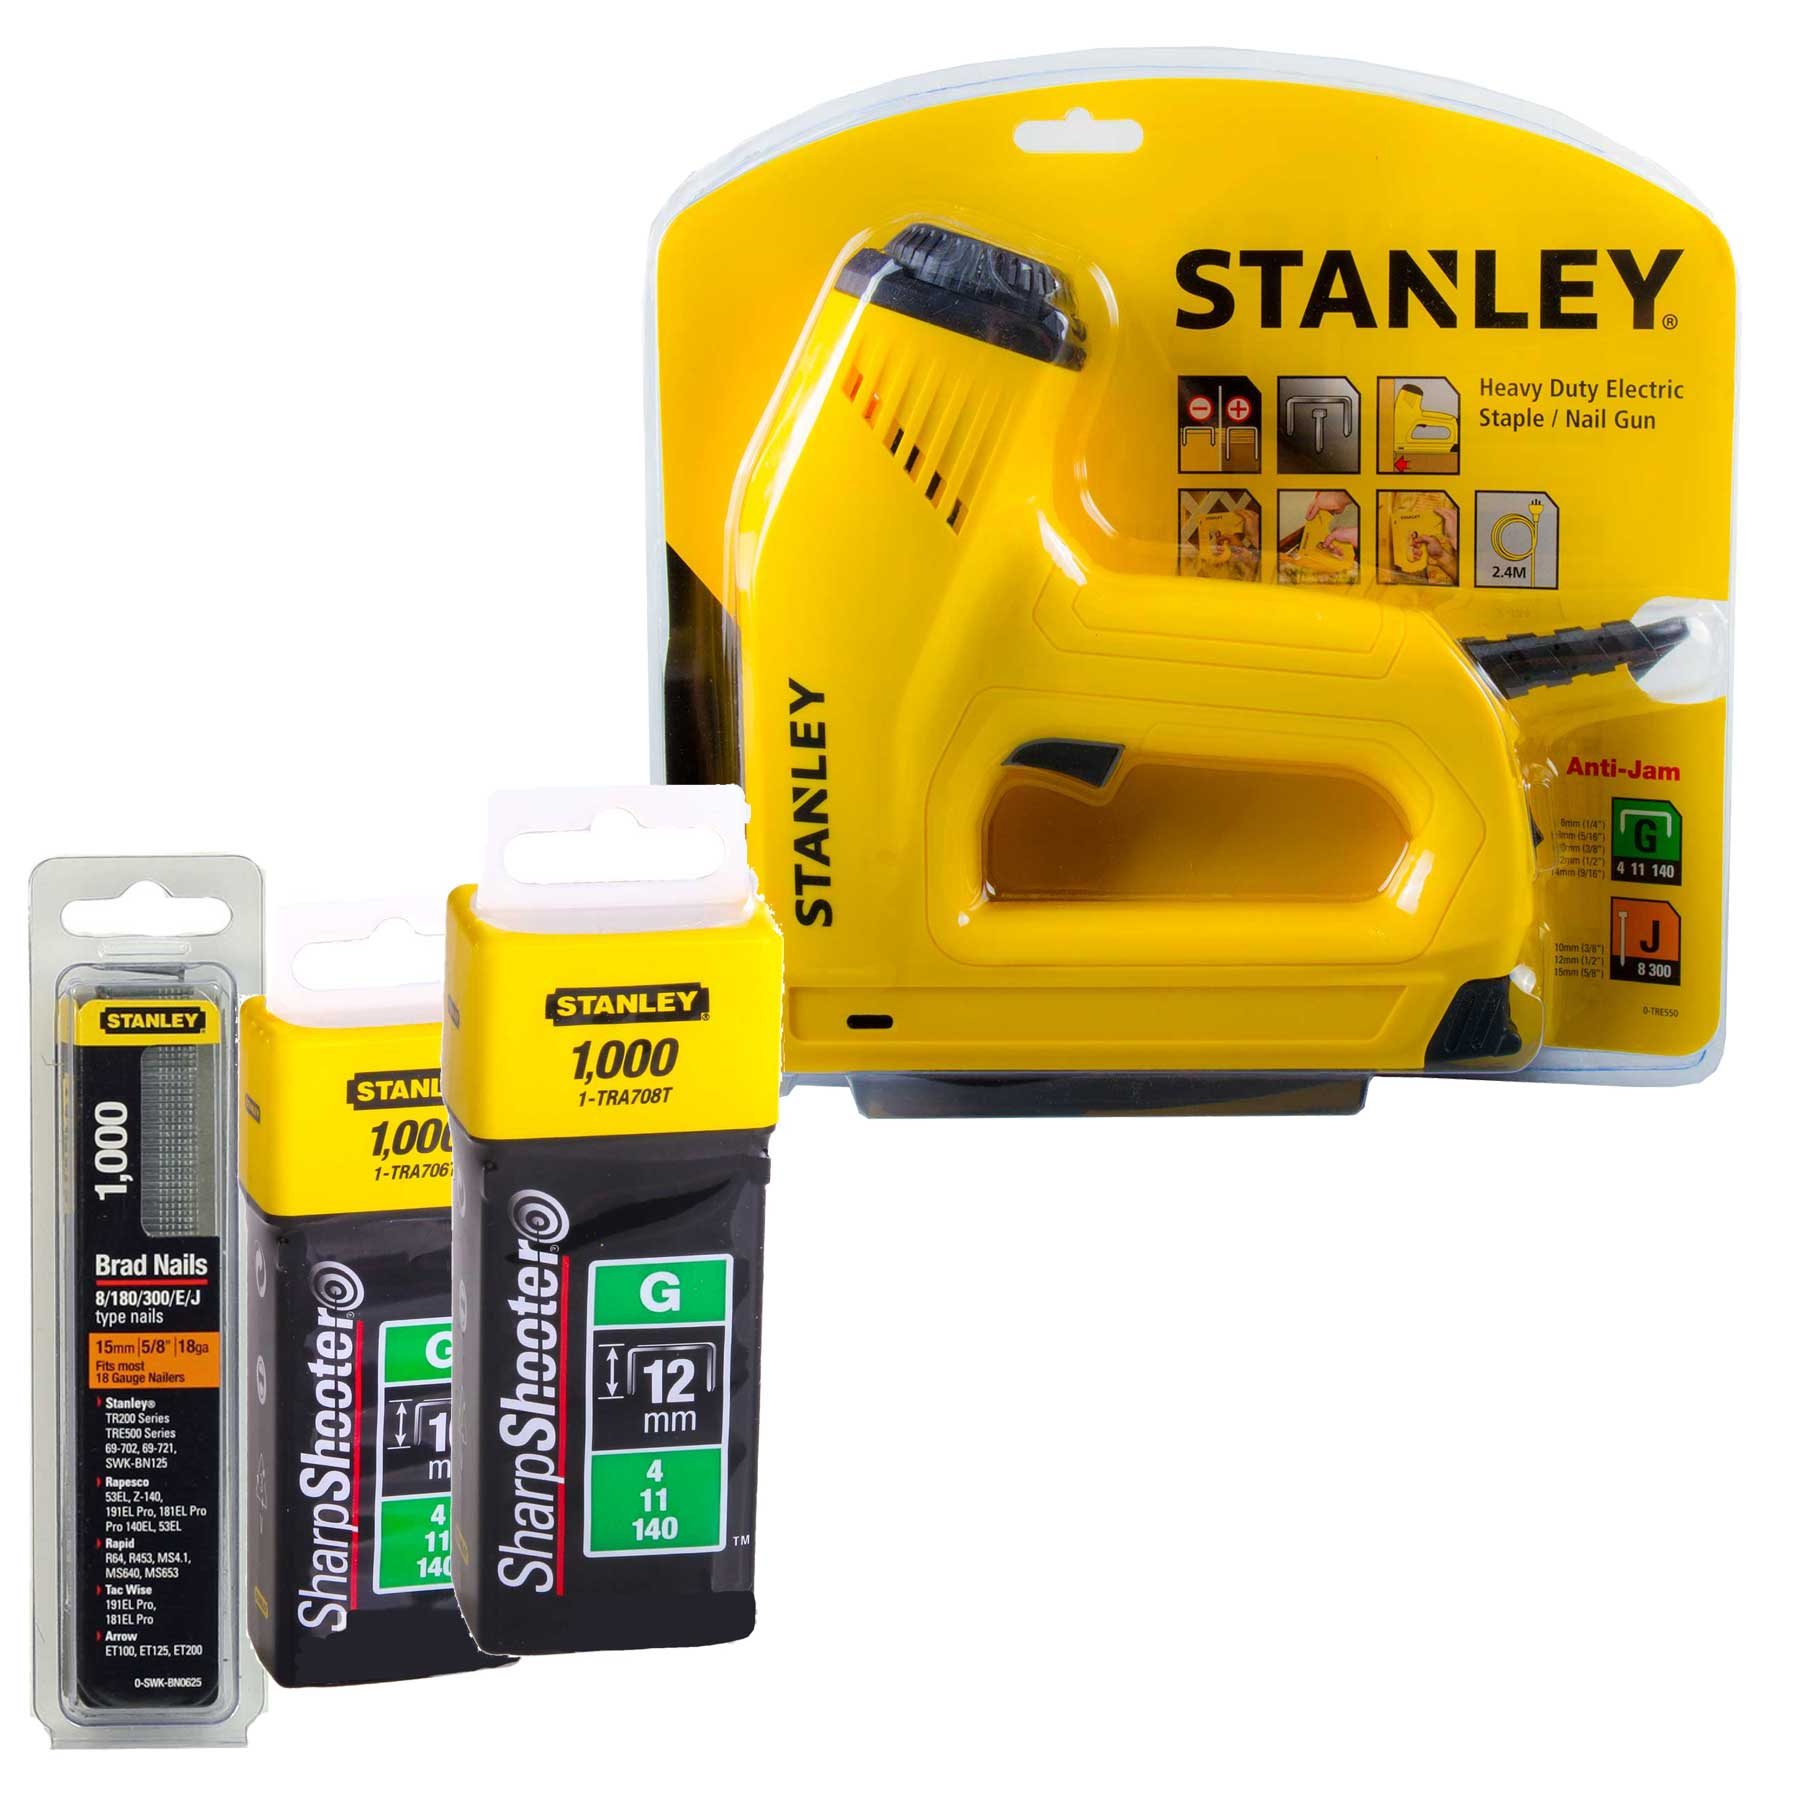 Stanley Electric Stapler Nail Gun With 2000 Staples And